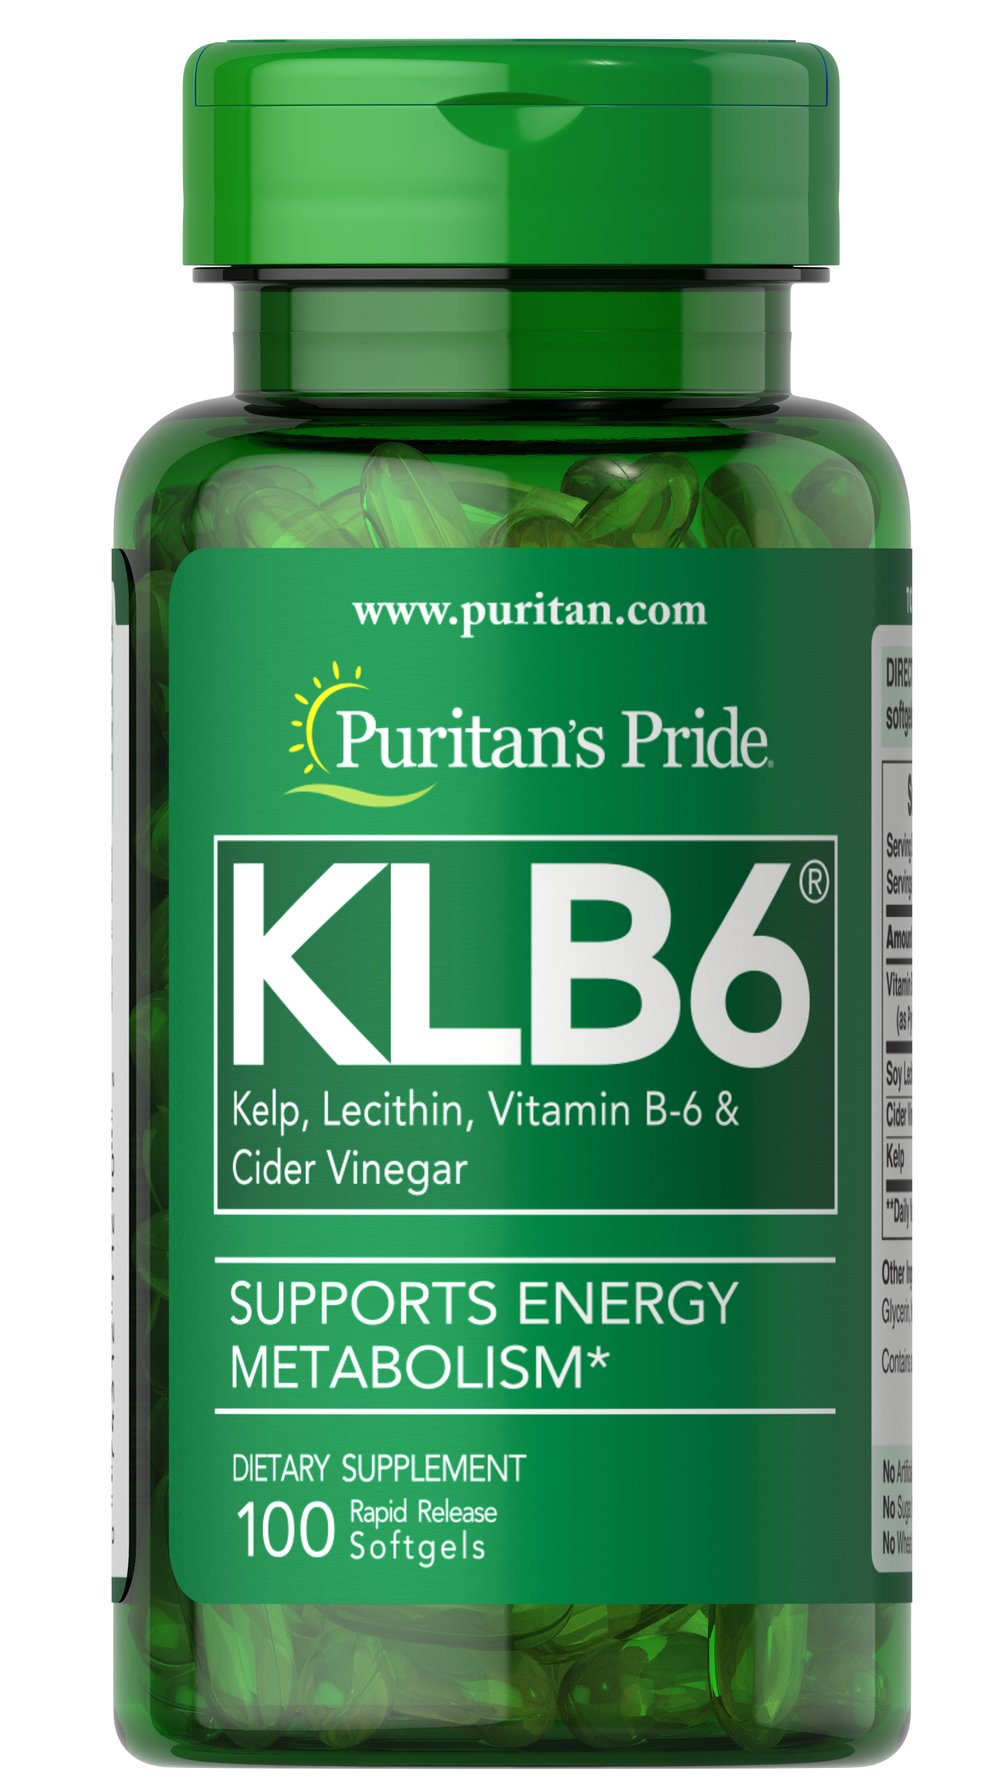 Natural KLB6® <p>Kelp, Lecithin,  Vitamin B-6 and Cider Vinegar,  all-in-one softgel.  Kelp works to maintain a healthy thyroid; Lecithin is an excellent natural source of choline and inositol; B-6 functions as a coenzyme involved in protein and fat metabolism; and Cider Vinegar is a natural and rich source of potassium and other associated minerals.**</p> 100 Softgels  $8.99